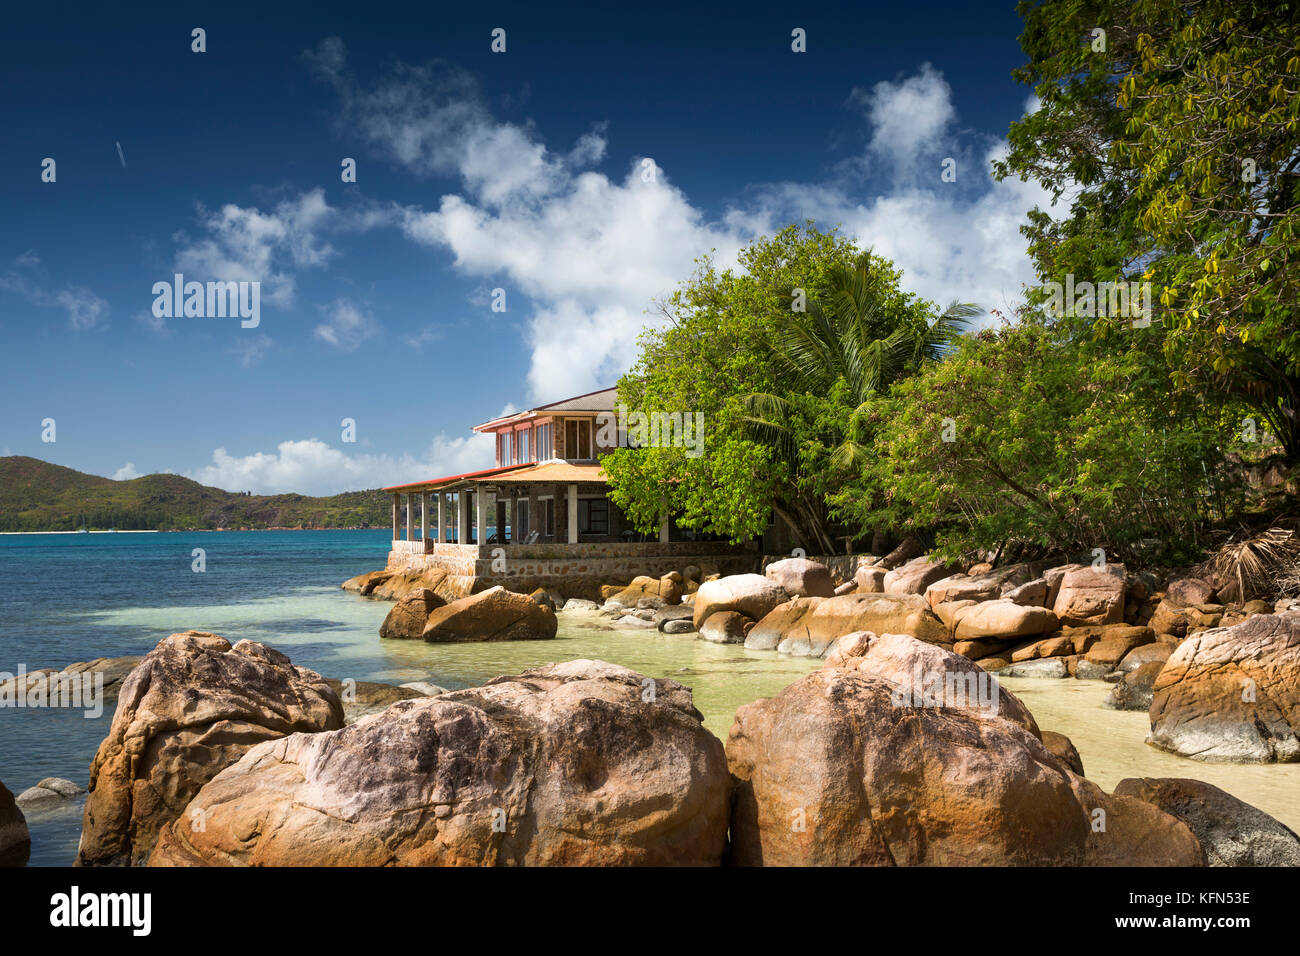 The Seychelles, Praslin, Anse Posession, Coin d'Or Guest House on headland beyond rocks - Stock Image